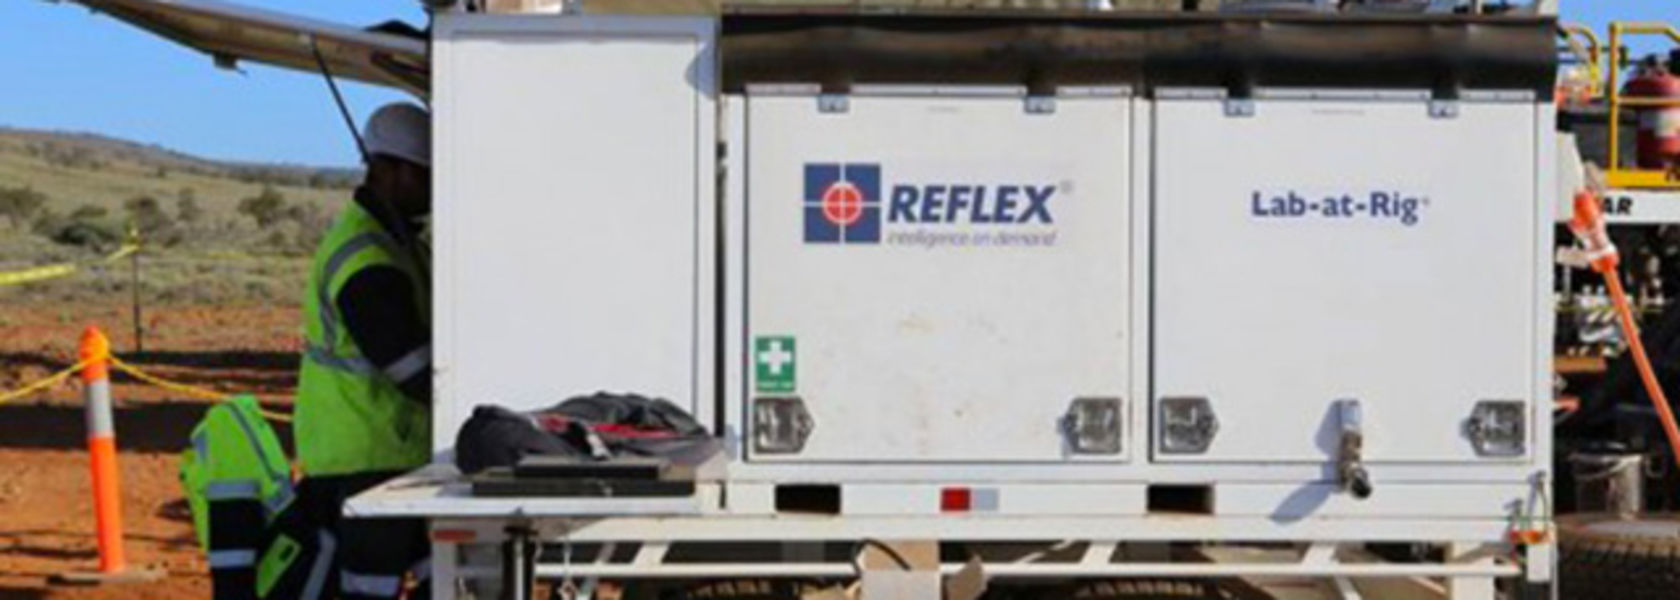 Reflex to commercialise Lab-at-Rig